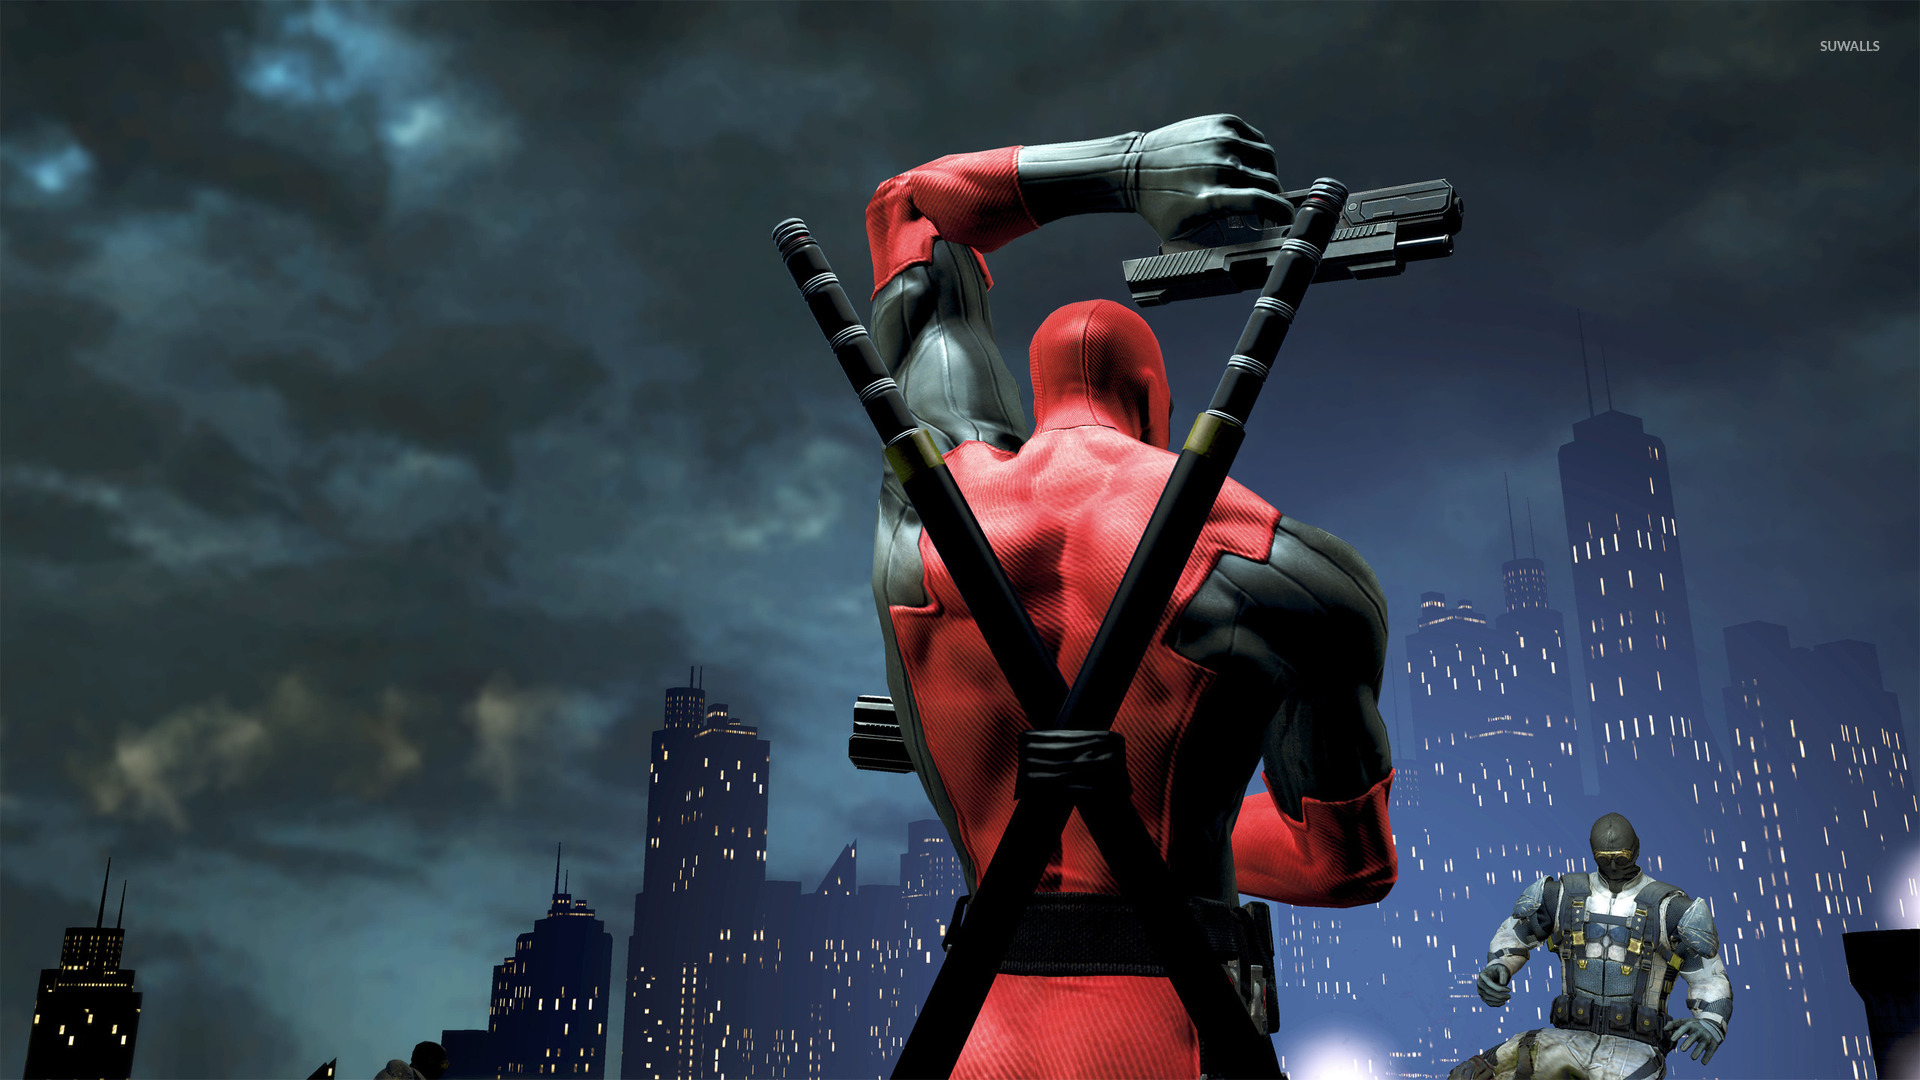 Fun In The World Of Games Hd Wallpapers: Deadpool [12] Wallpaper